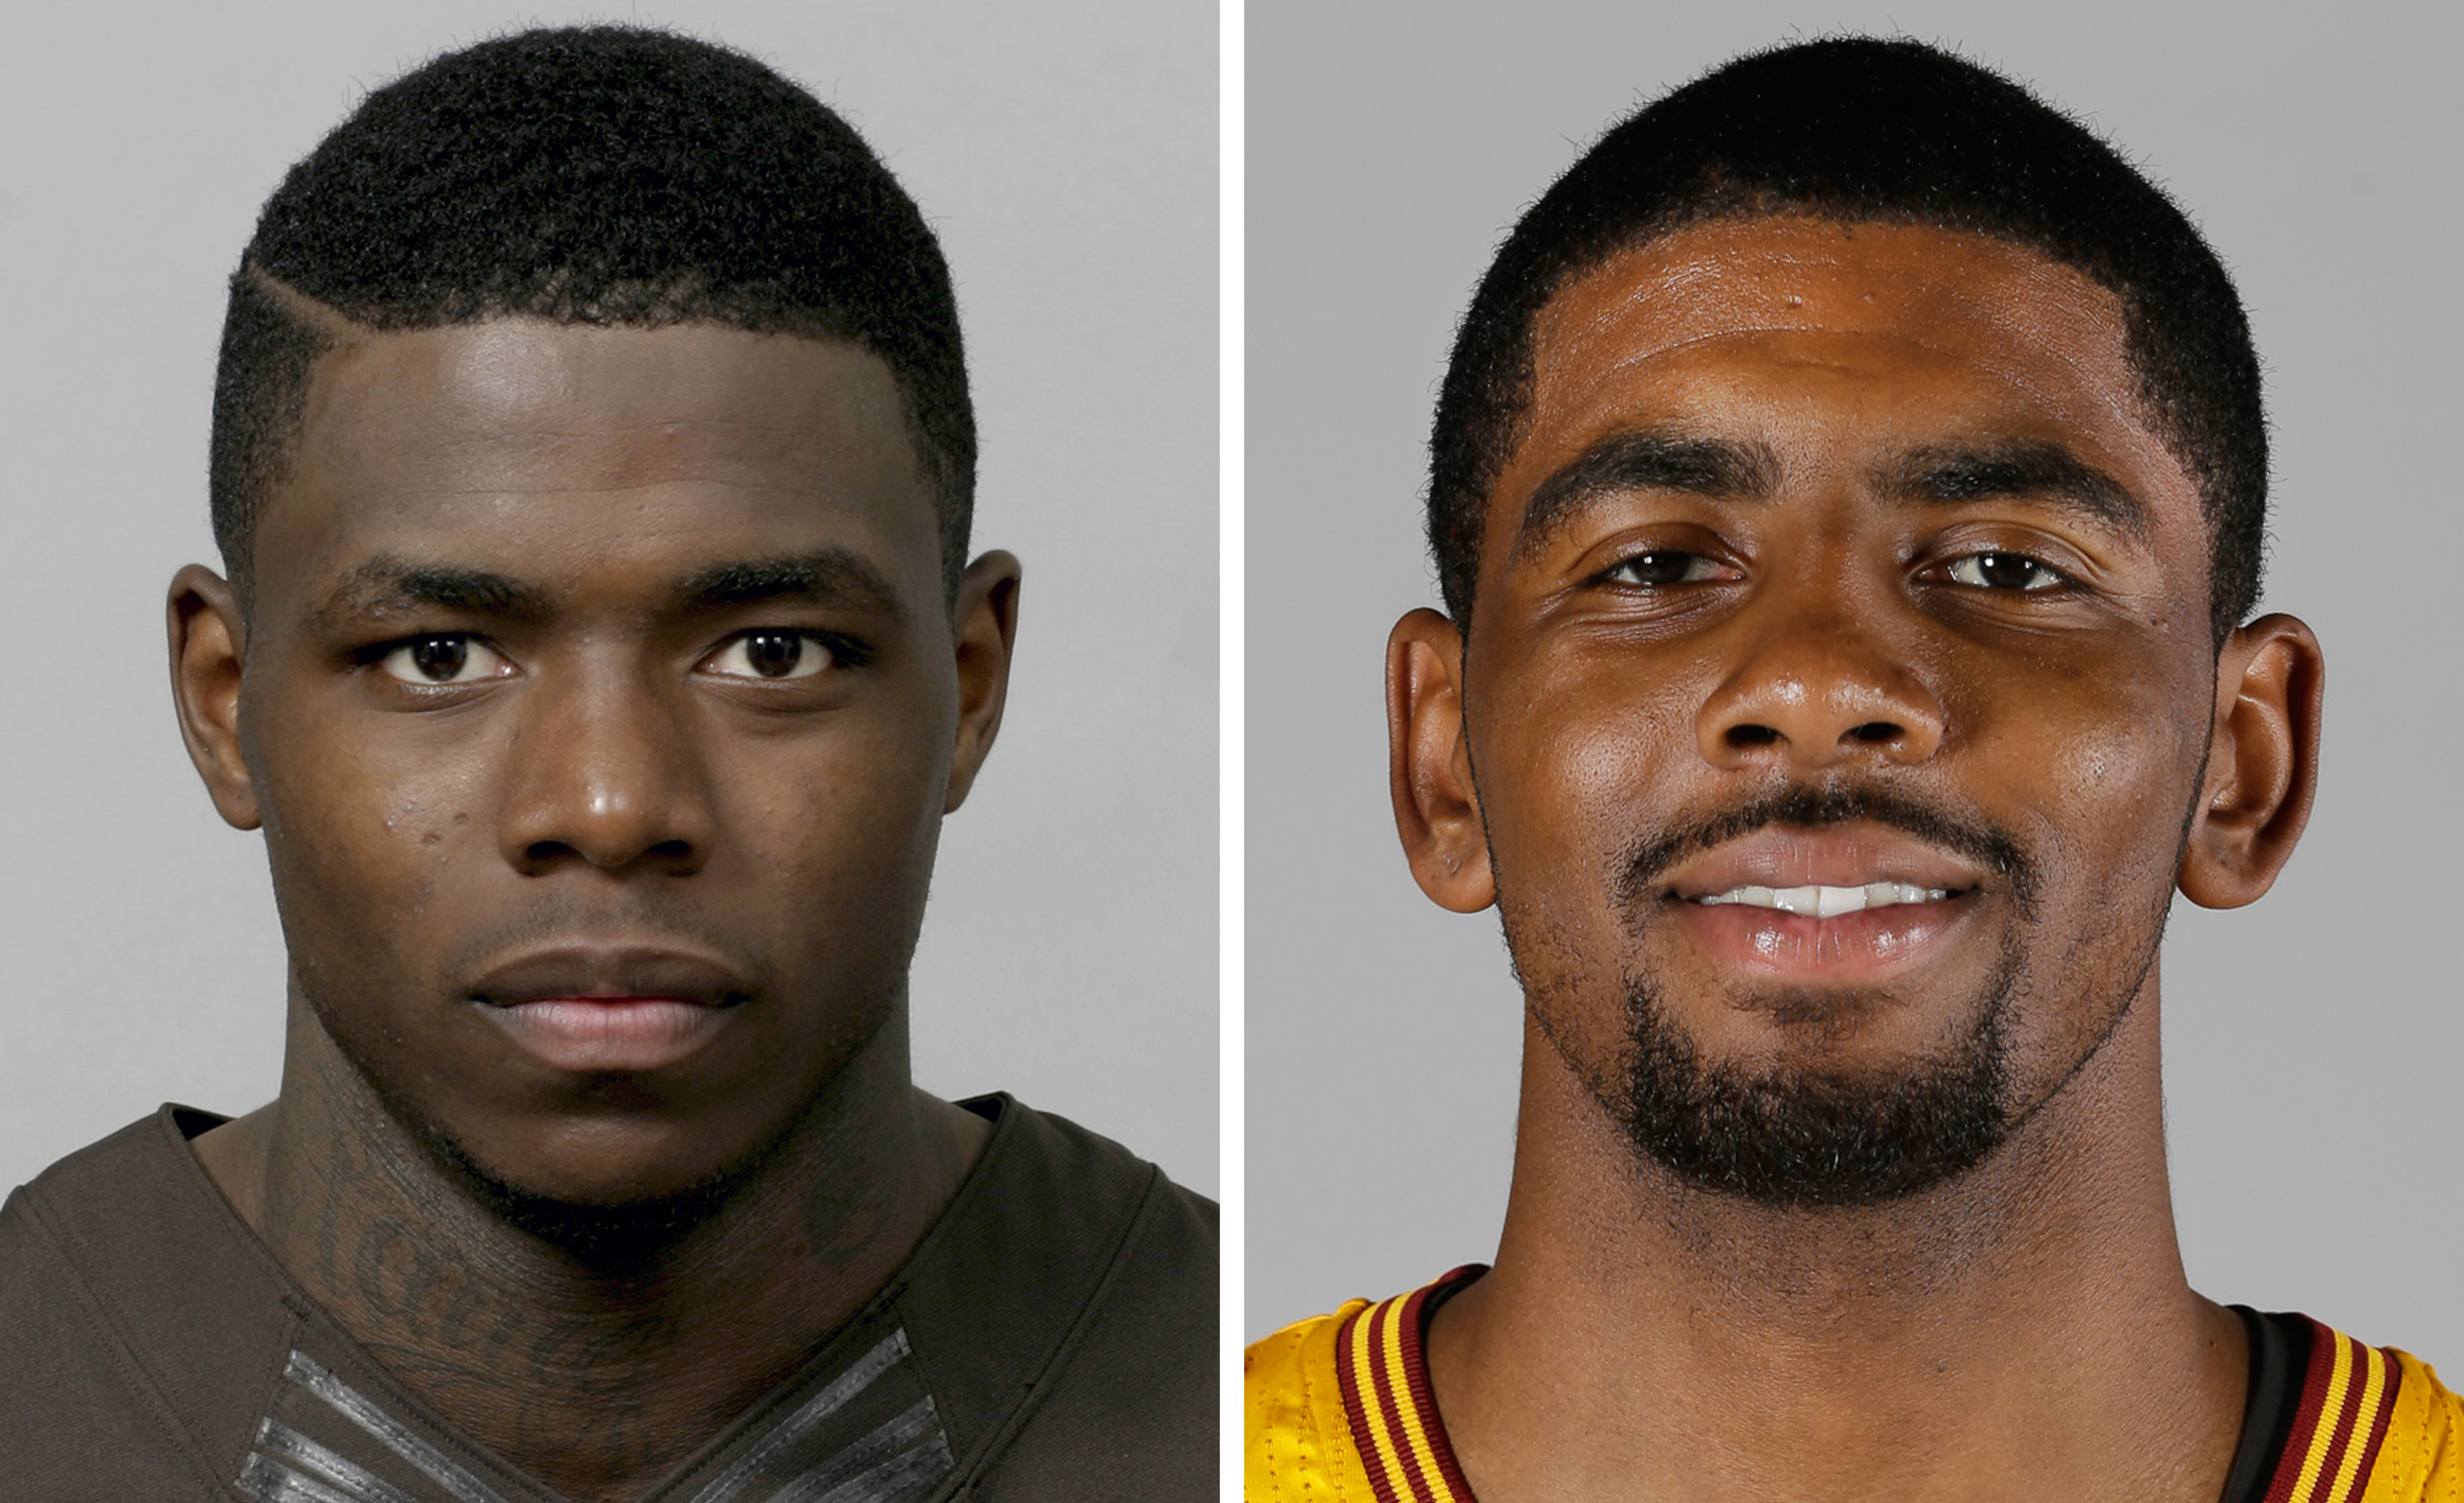 Cleveland clash: Irving, Gordon in media spat